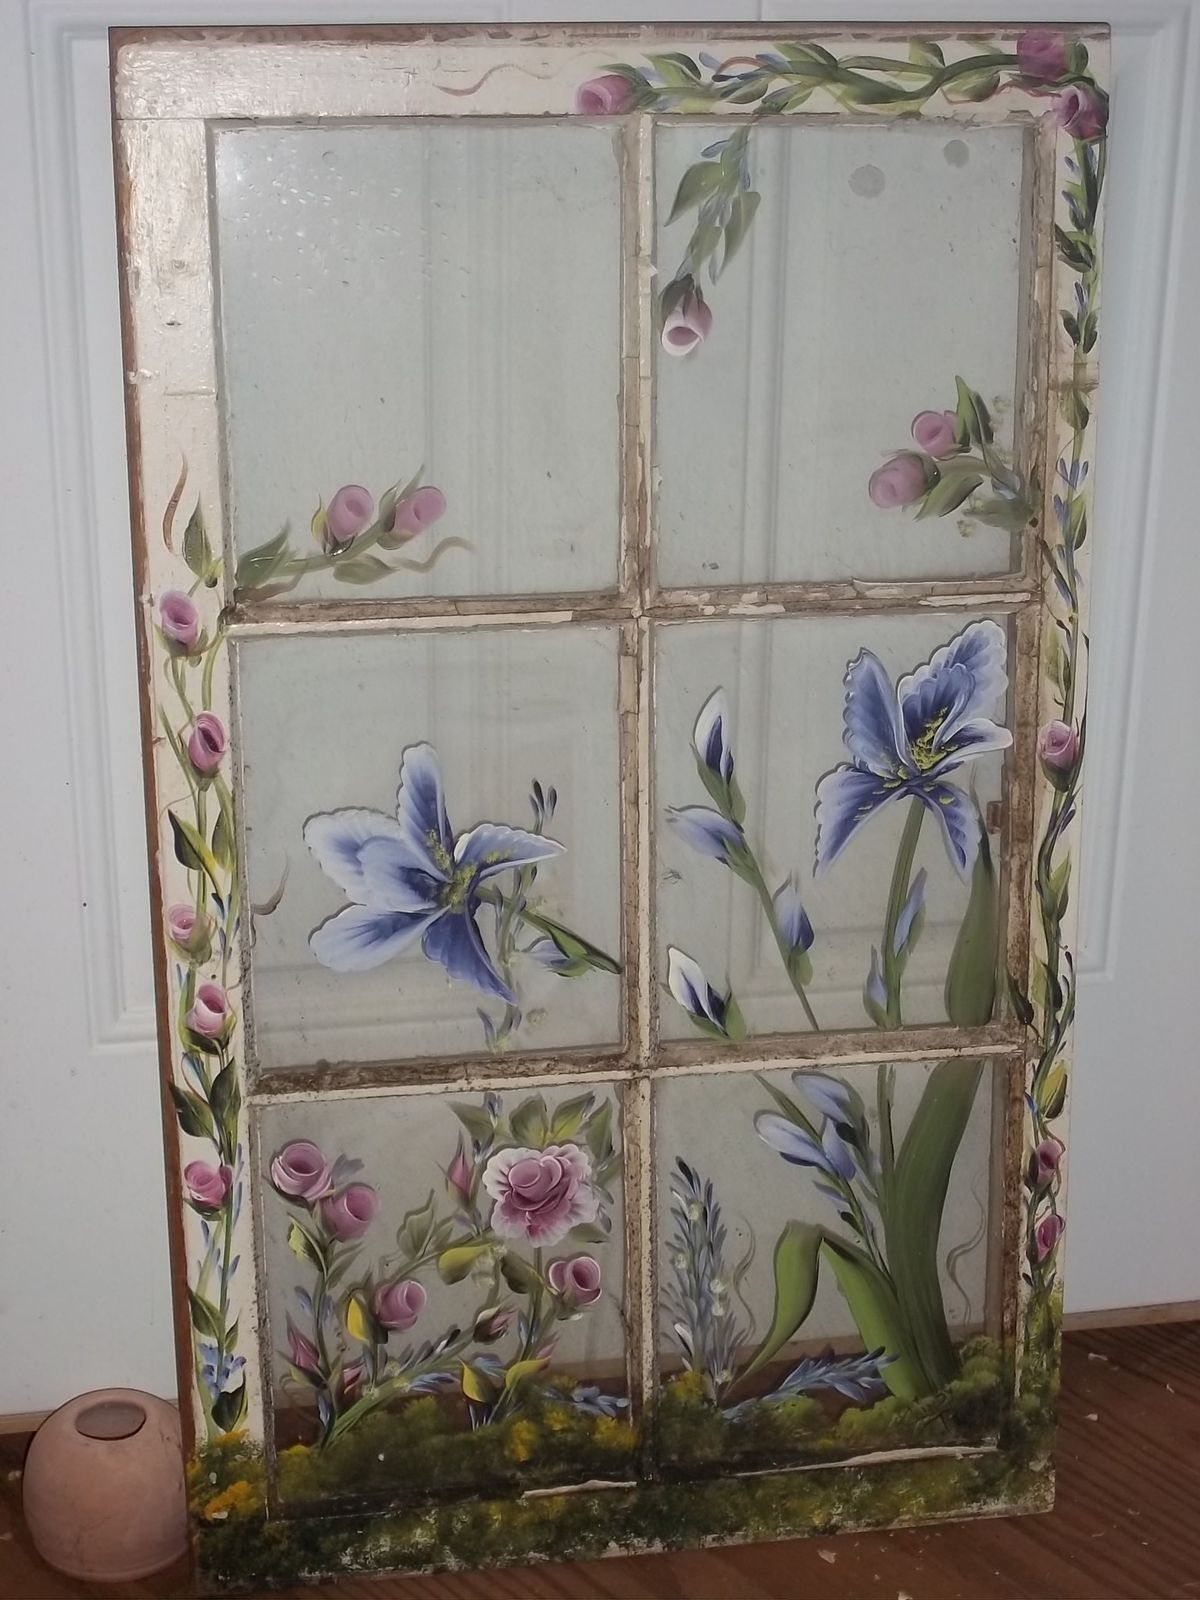 Pin By Carol Axberg On Decorating Window Art Painting